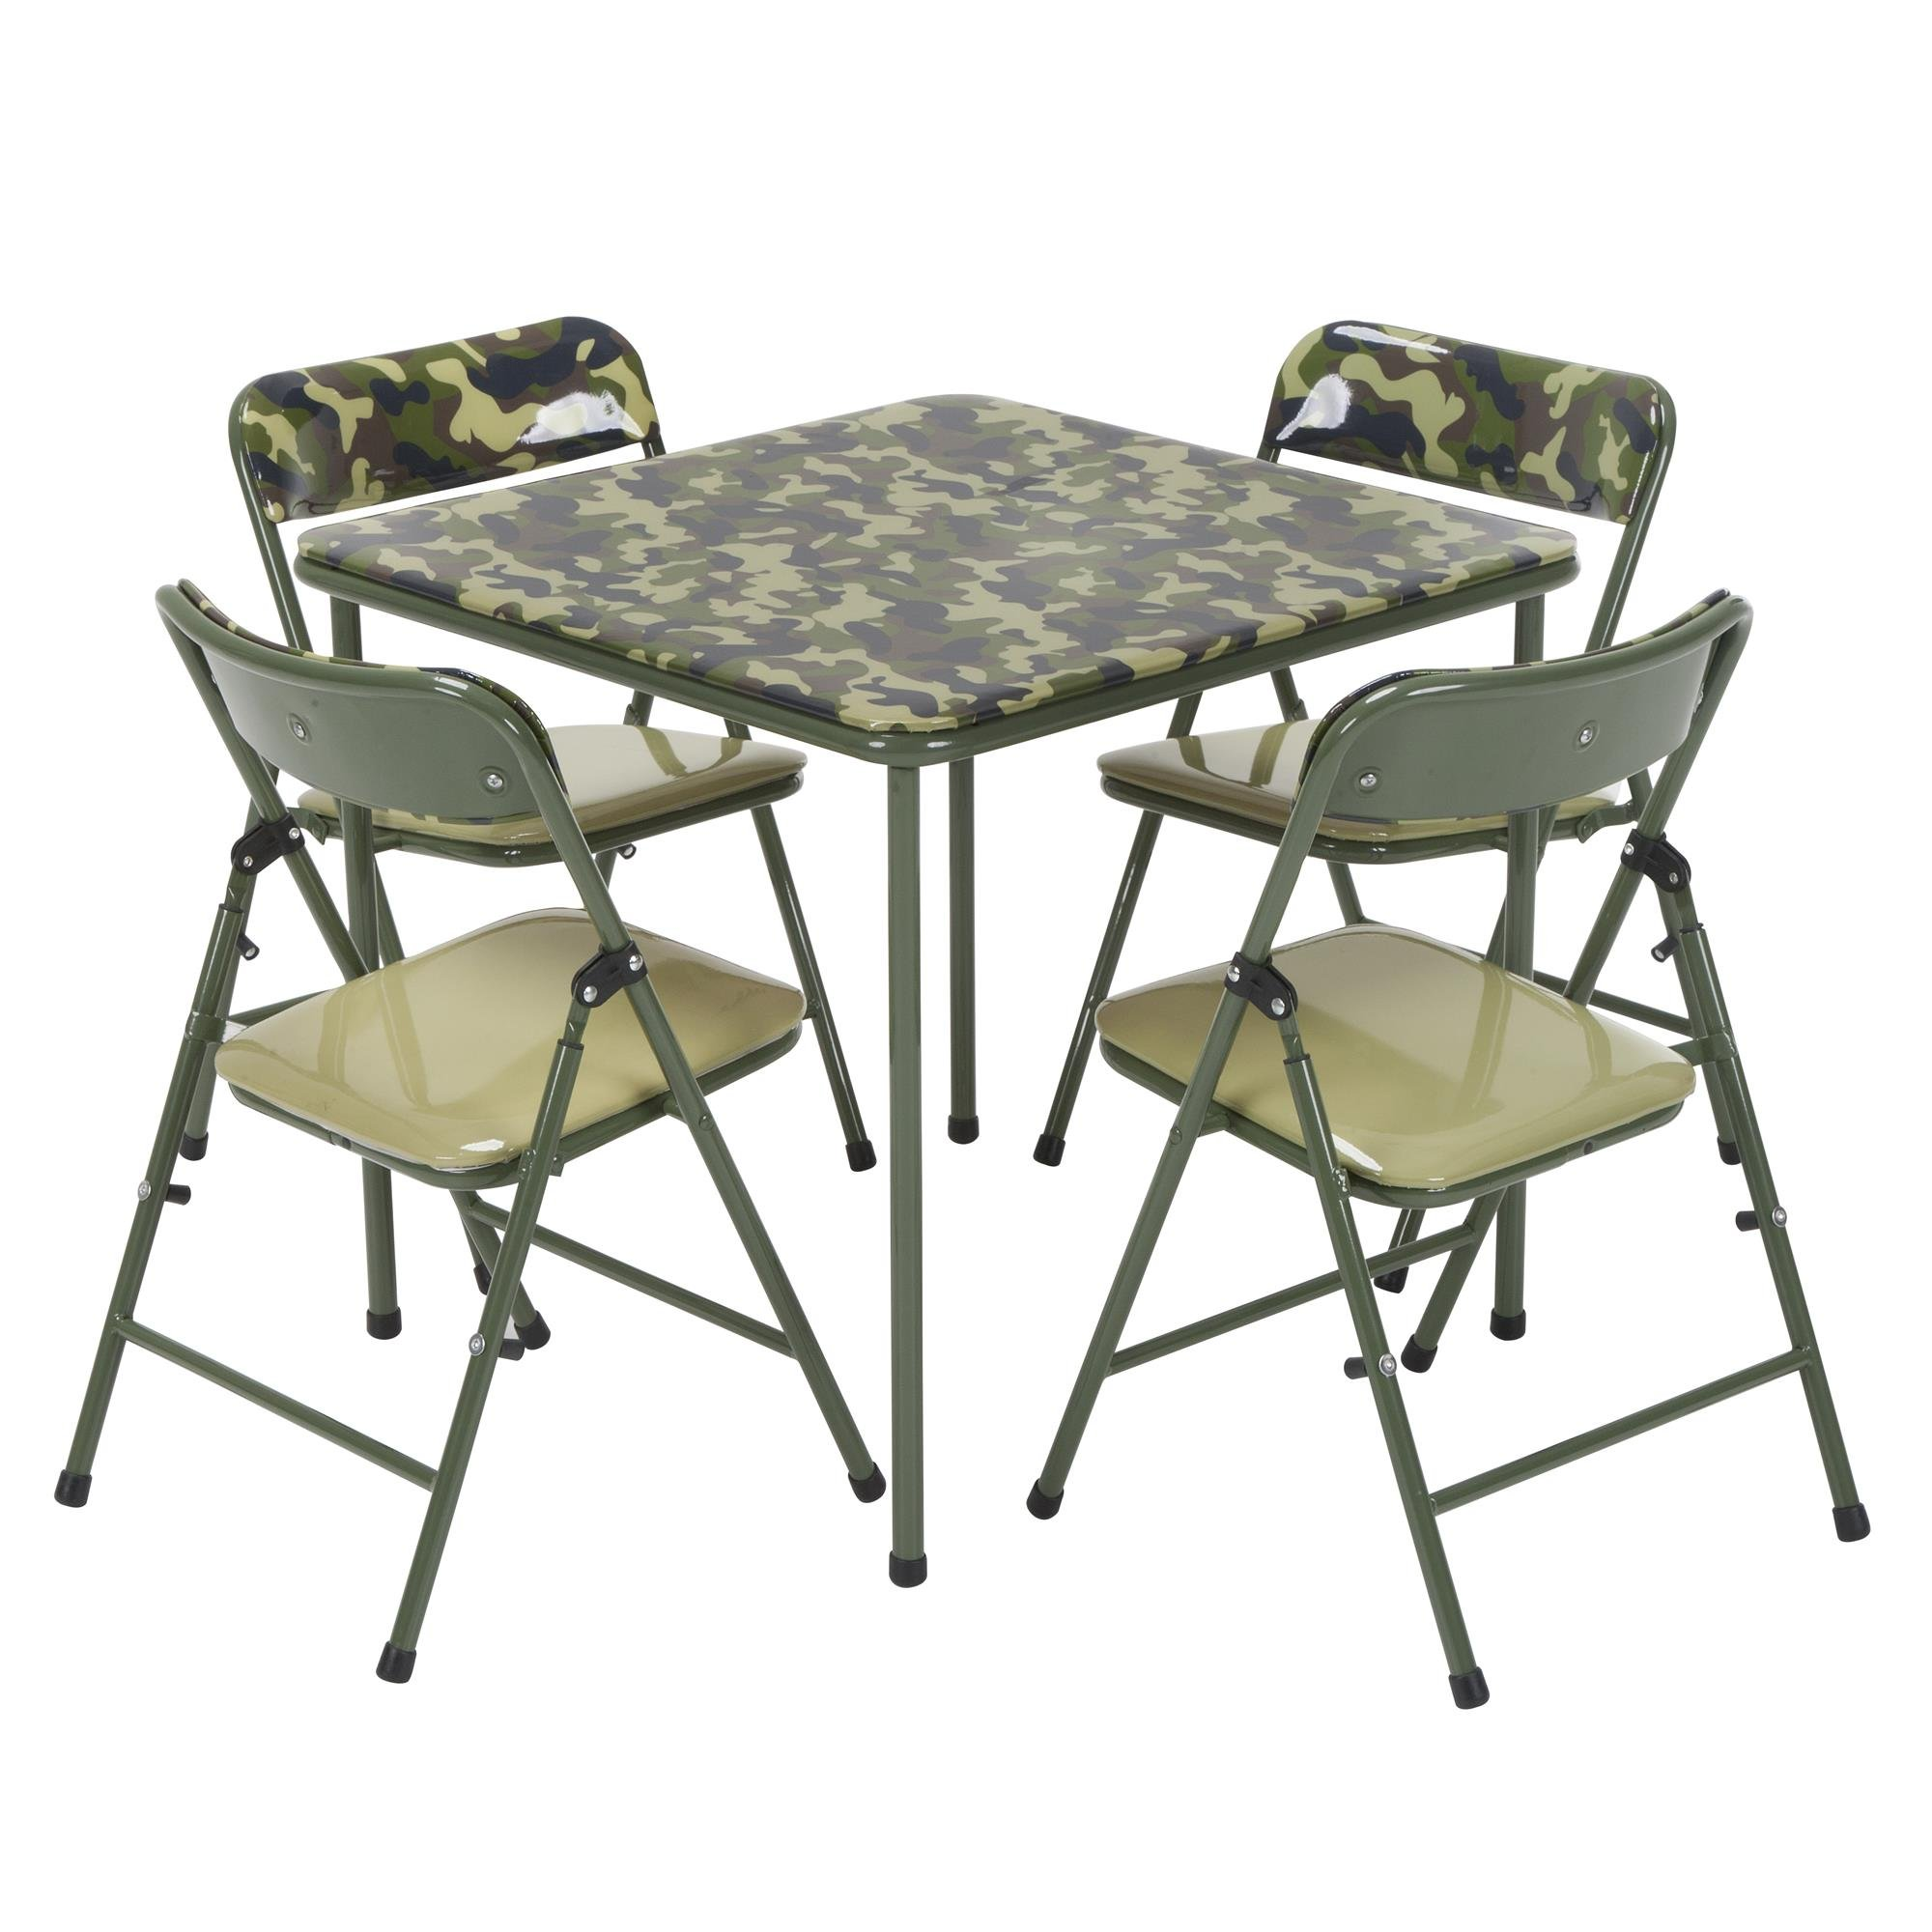 Cosco Pinch-Free 5pc Vinyl Set, Camo with Green Frame by Cosco